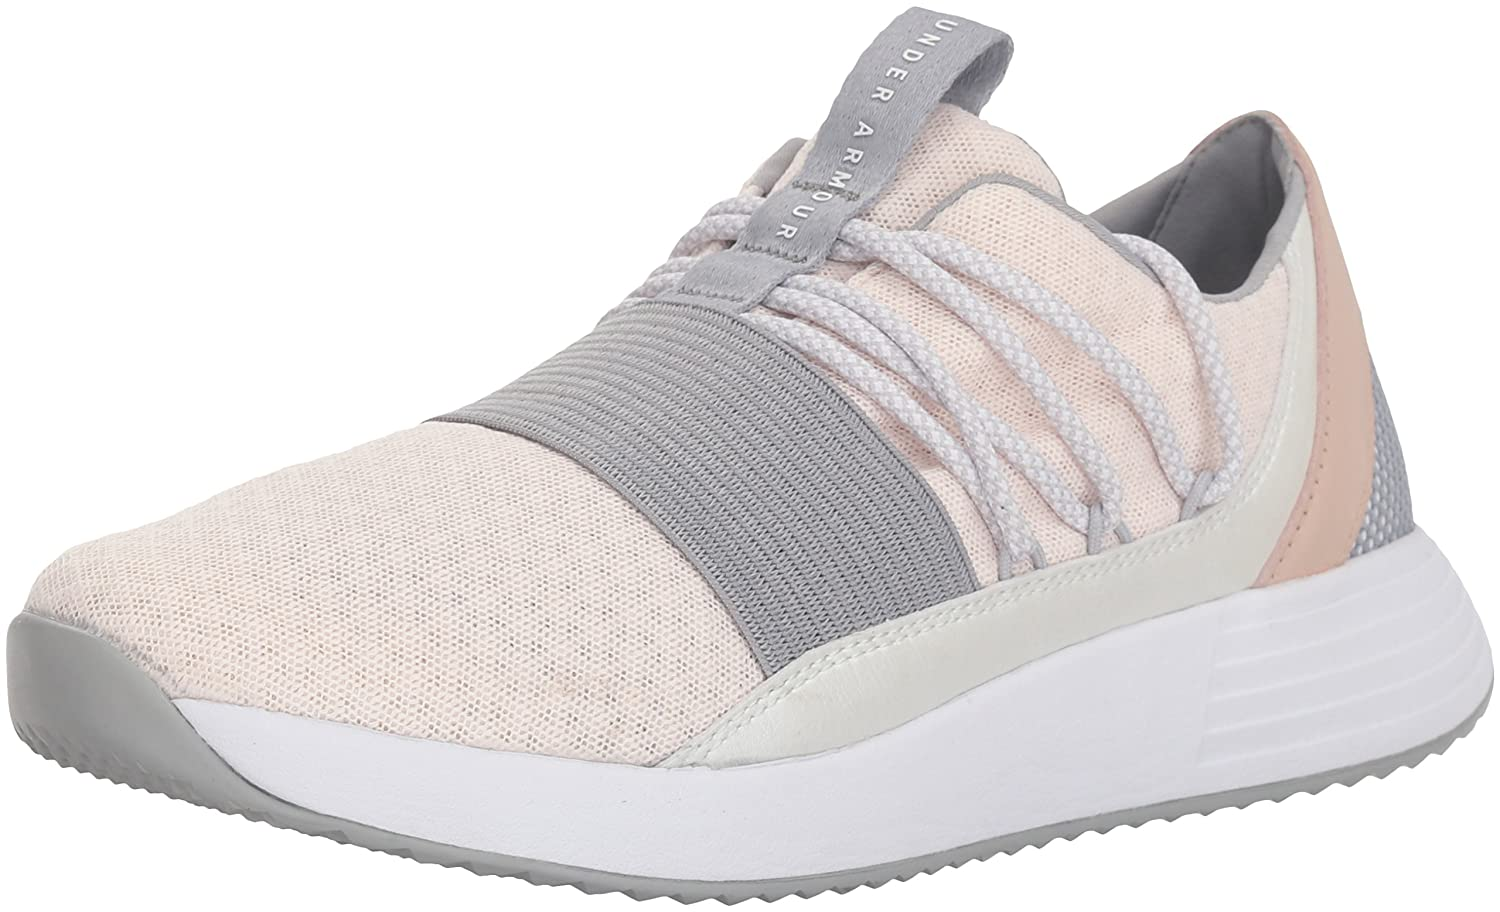 Under Armour B071S8CTY2 Women's Breathe Lace Sneaker B071S8CTY2 Armour 6.5 M US|French Gray (601)/Overcast Gray 226611